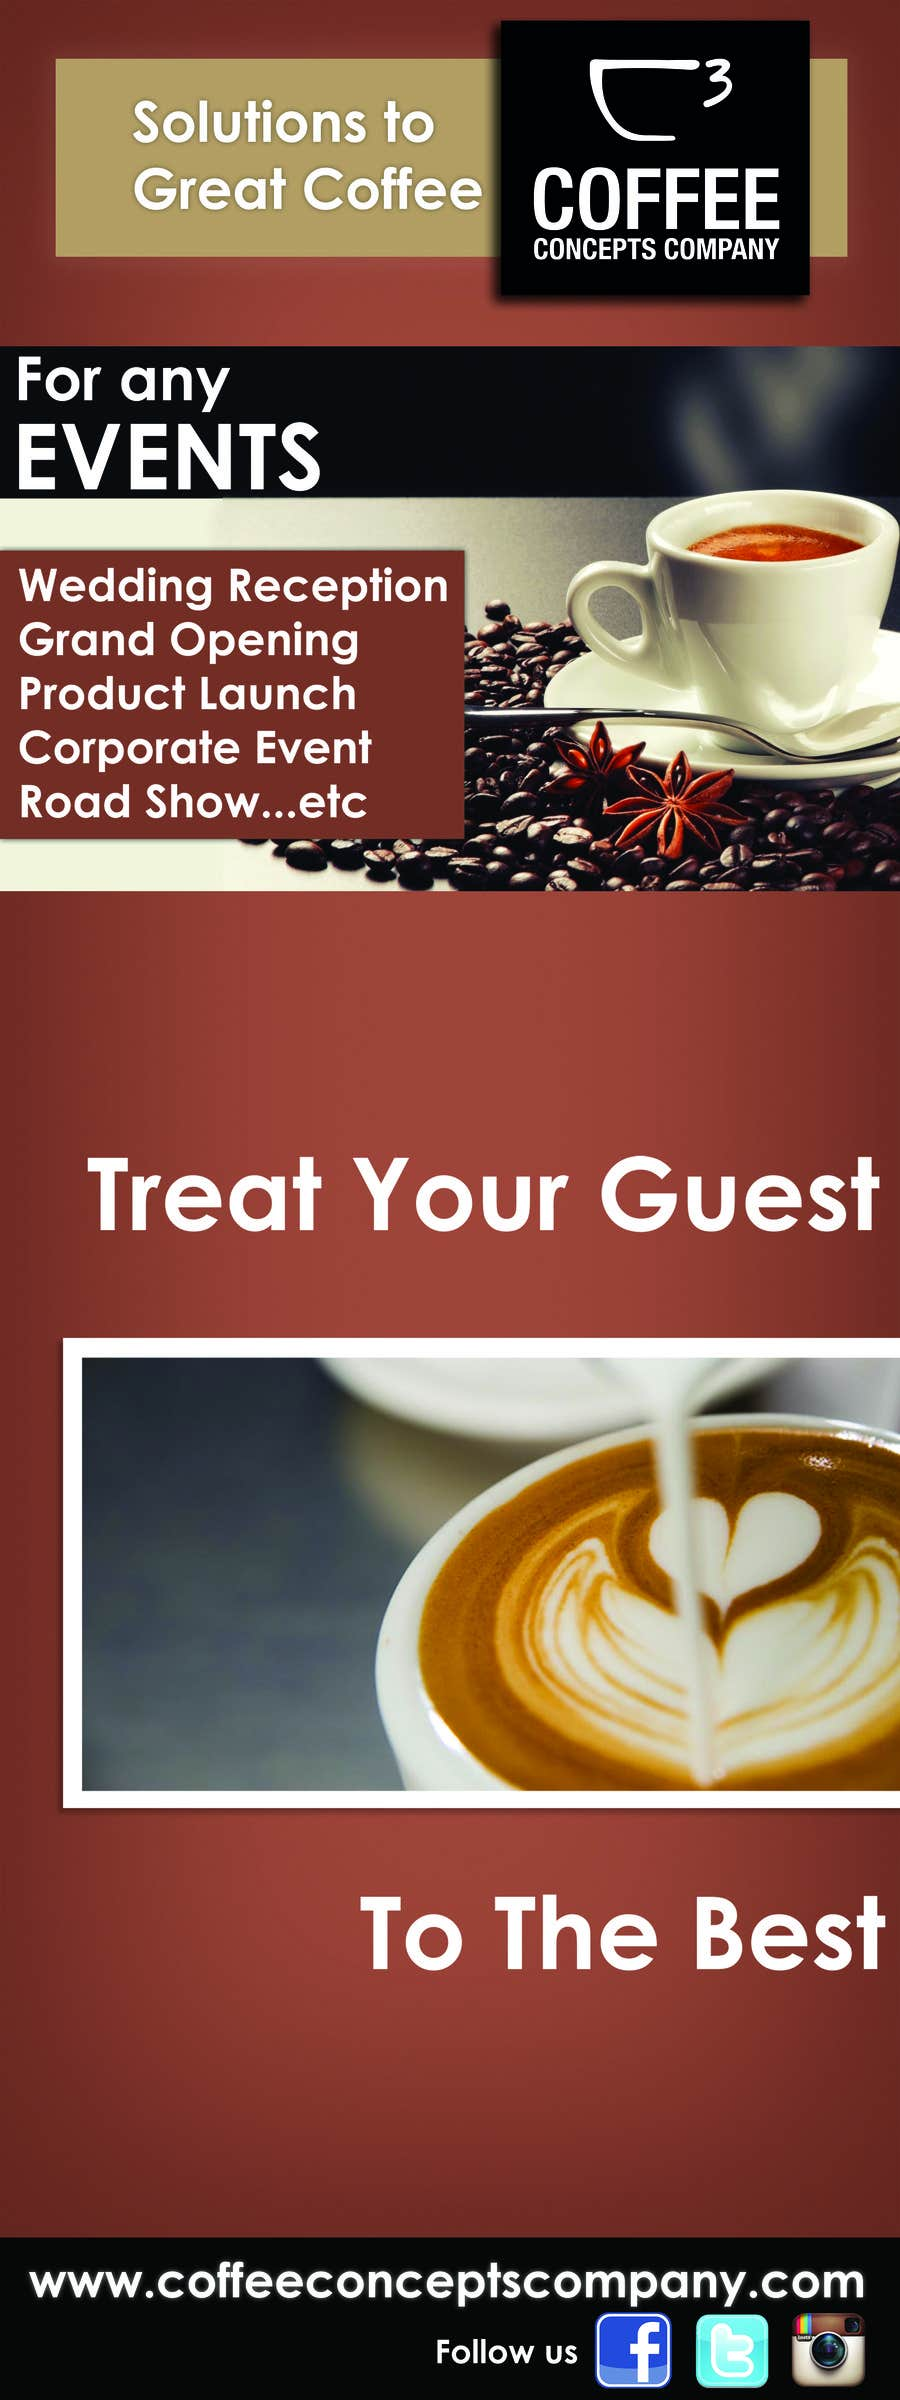 #13 for Design a Pull Up Banner for a Coffee Business by karunrams